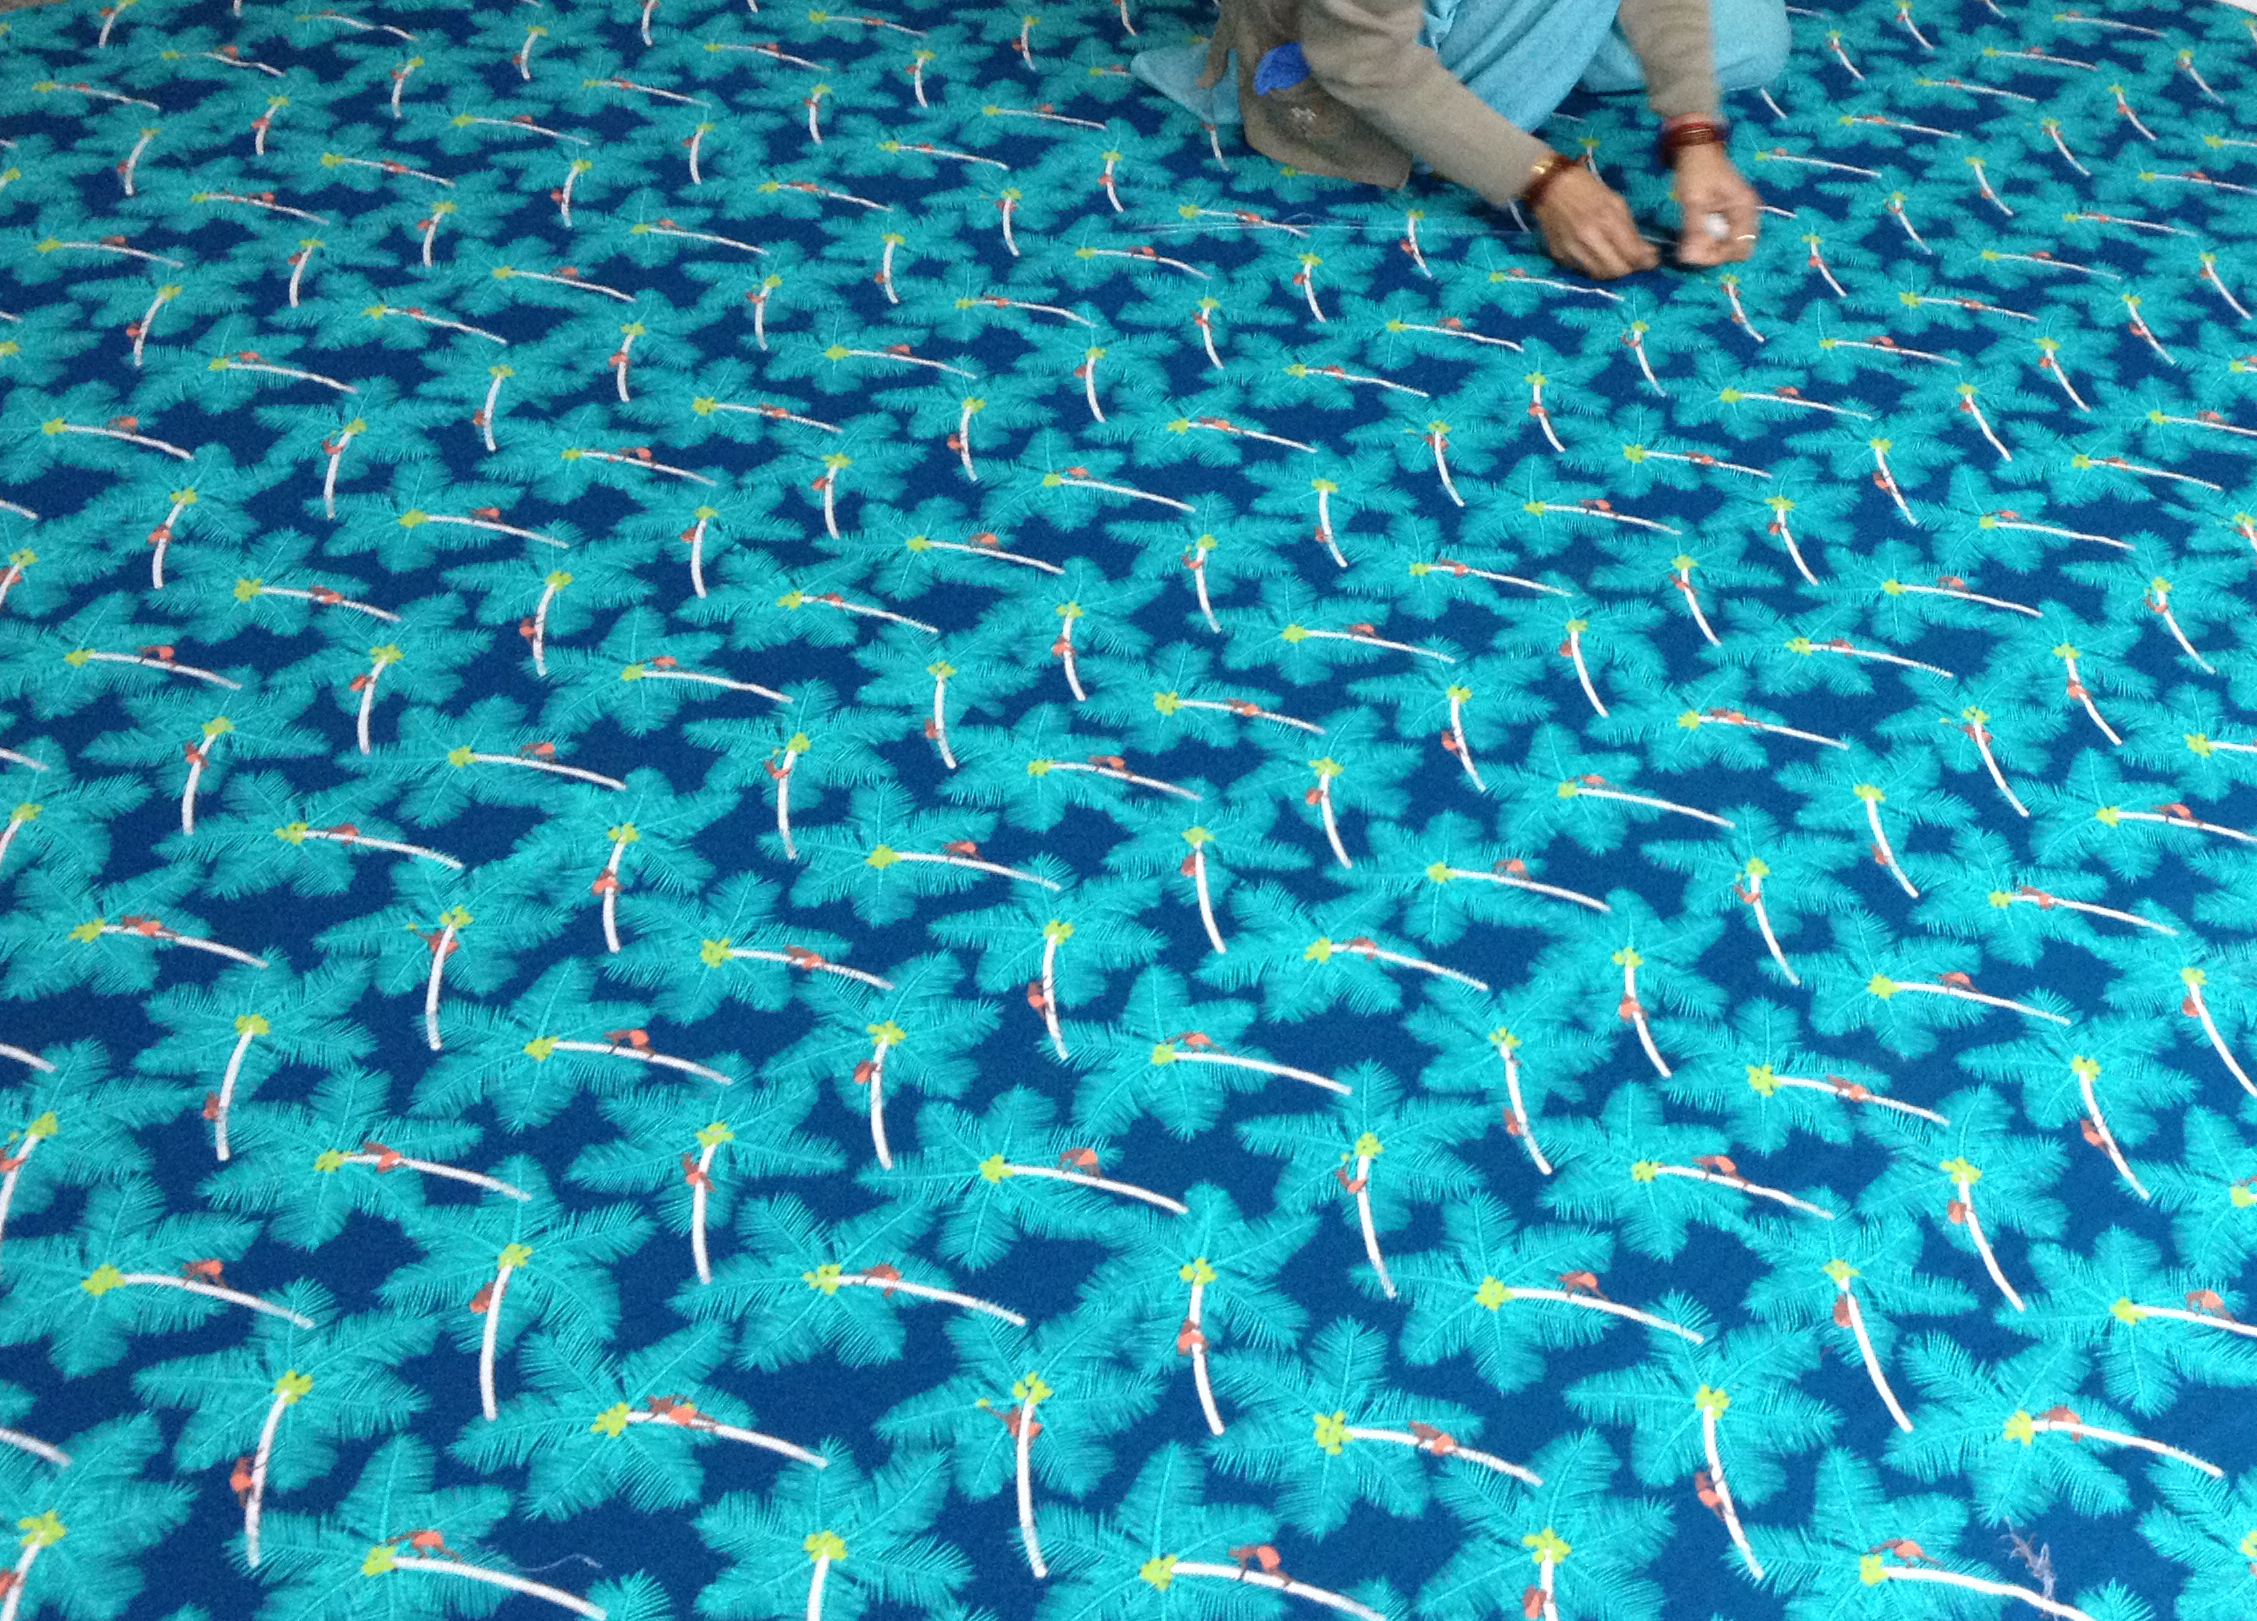 Alleppey Collection Coconut Palm Pickers Quilt Making - Image courtesy of Safomasi